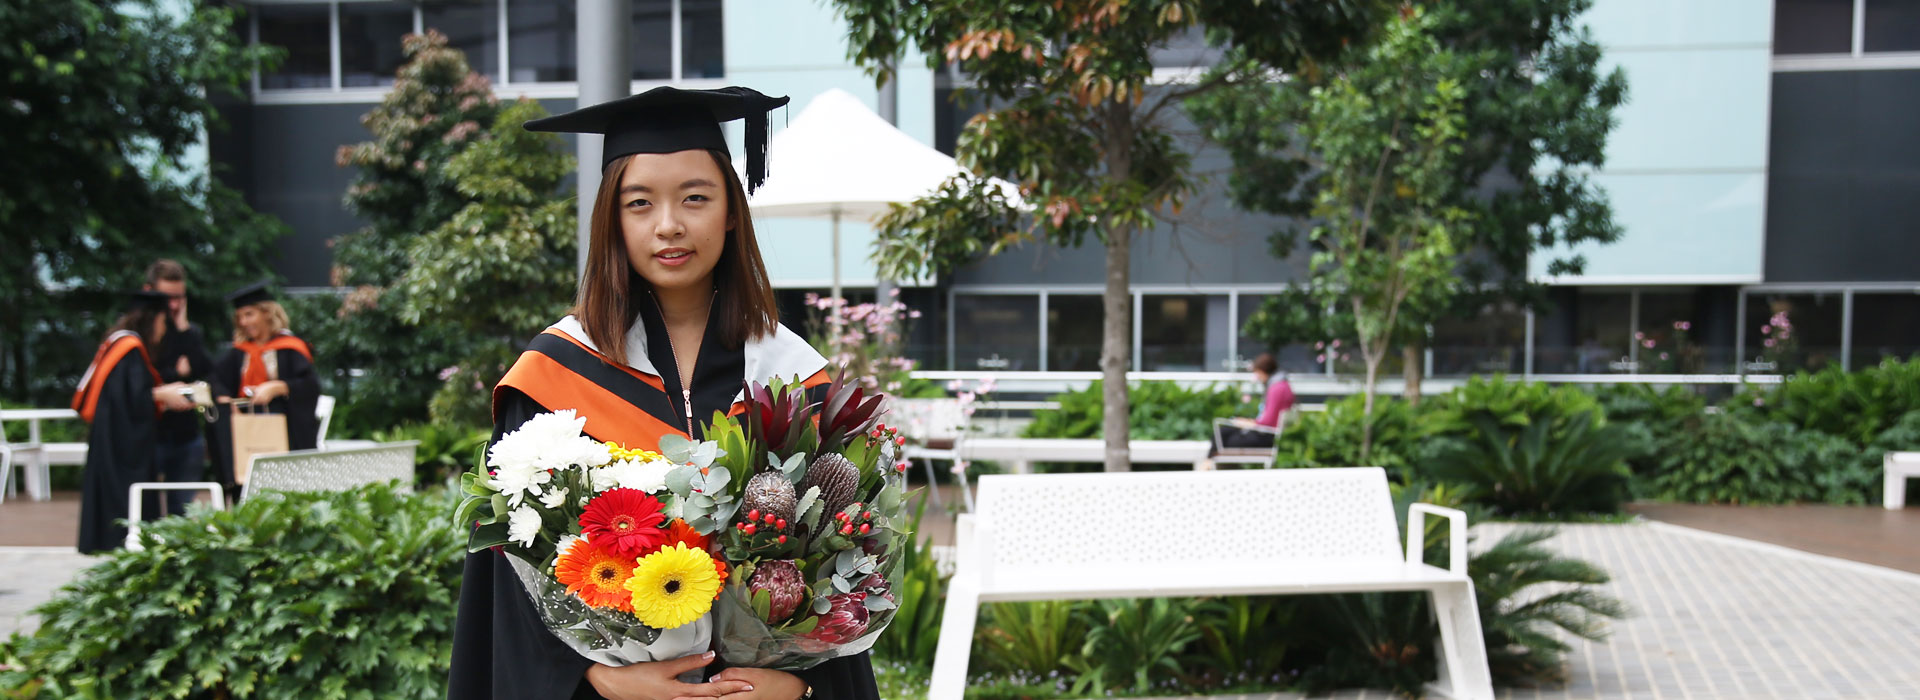 What University Has Taught Me – Leonie's Graduation